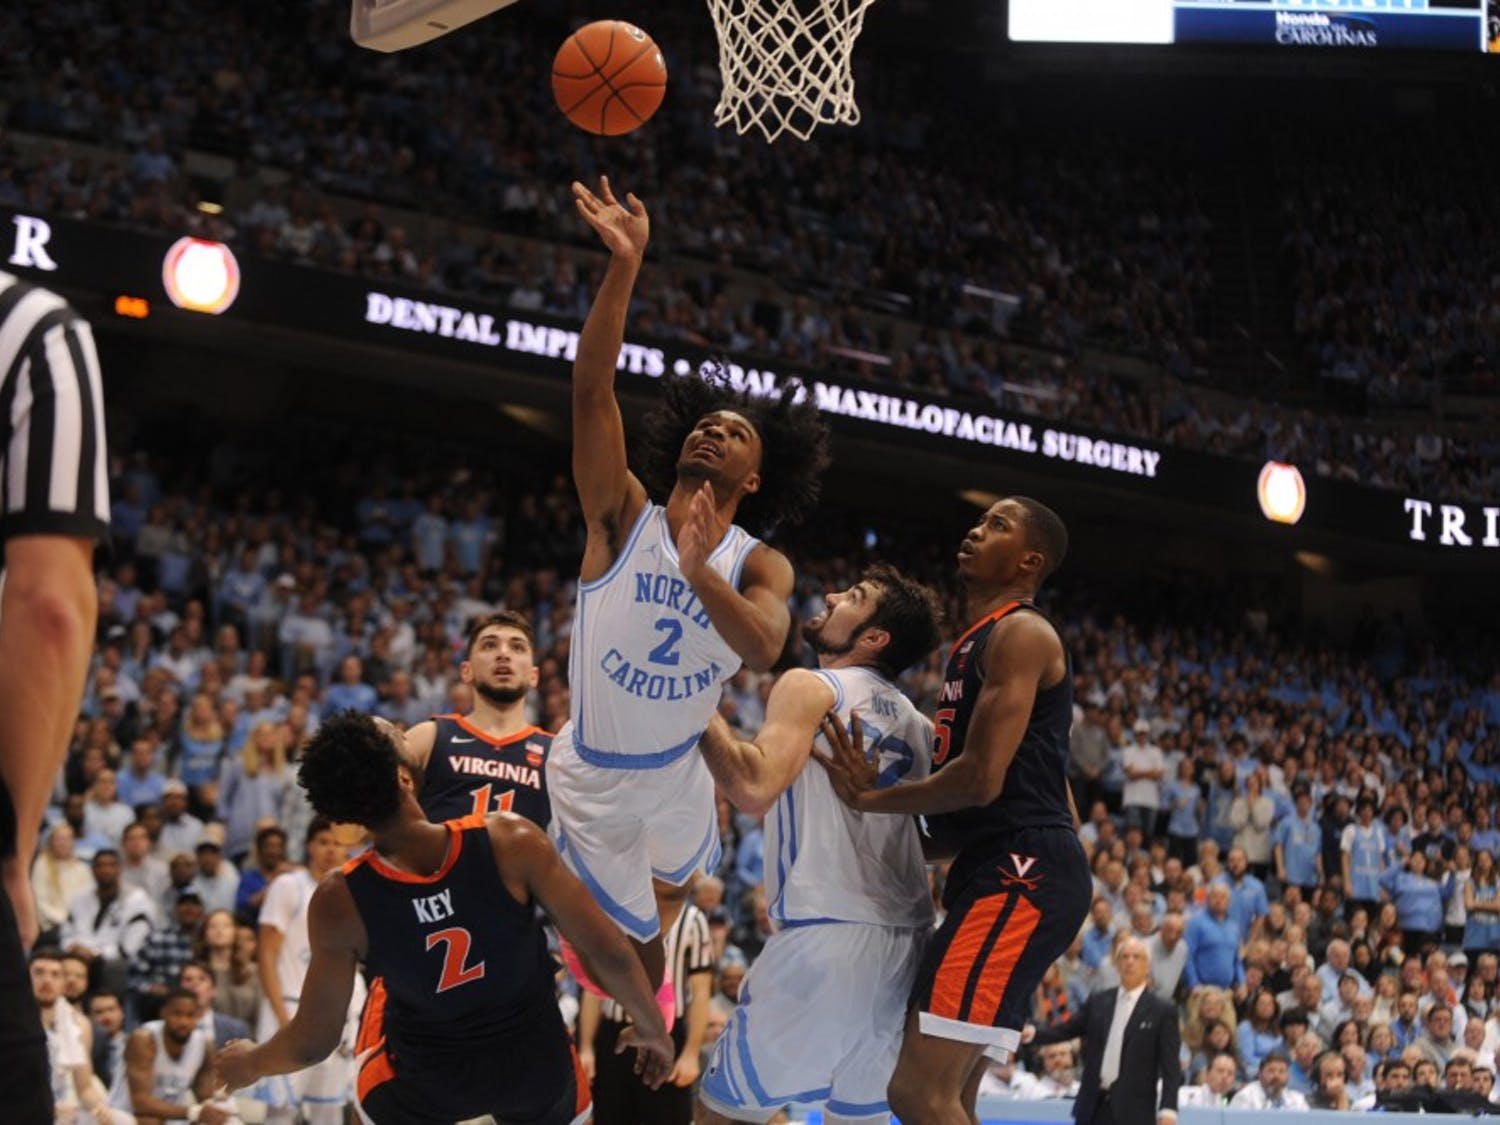 UNC first-year guard Coby White (2) shoots against Virgina on Monday, Feb. 11, 2019 in the Smith Center. White scored 17 points.